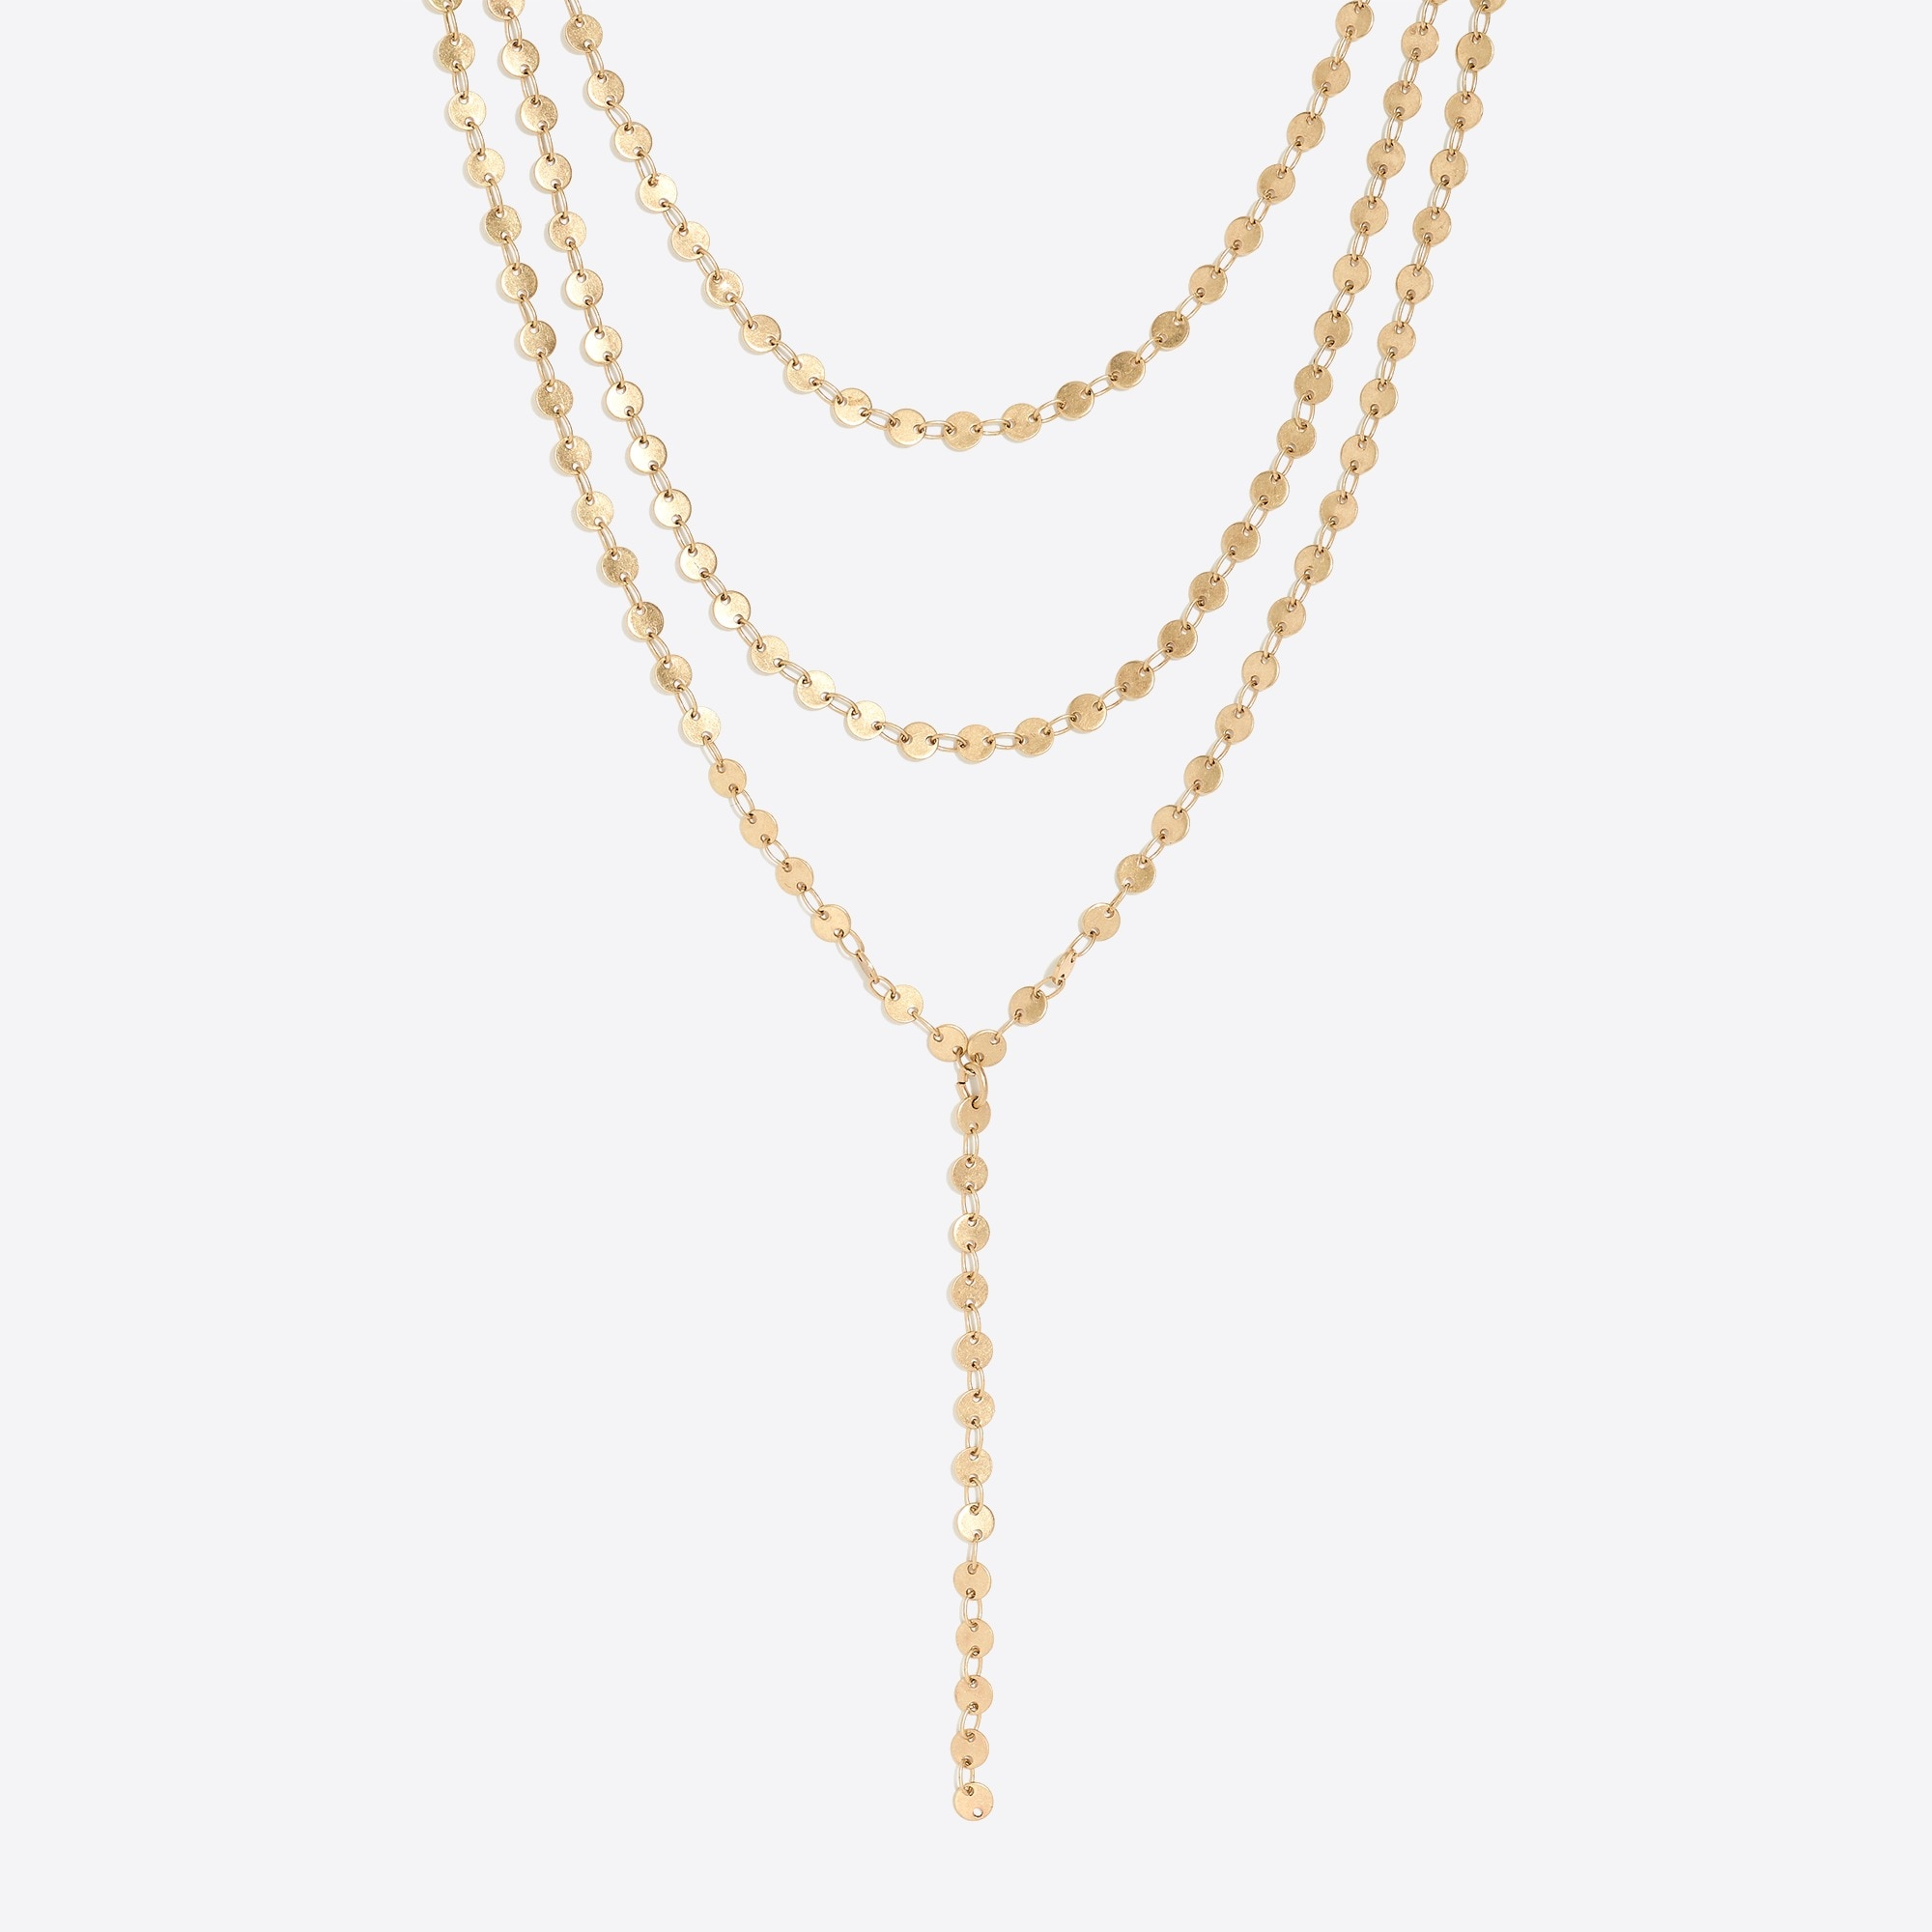 factory womens Golden sun layered Y-necklace